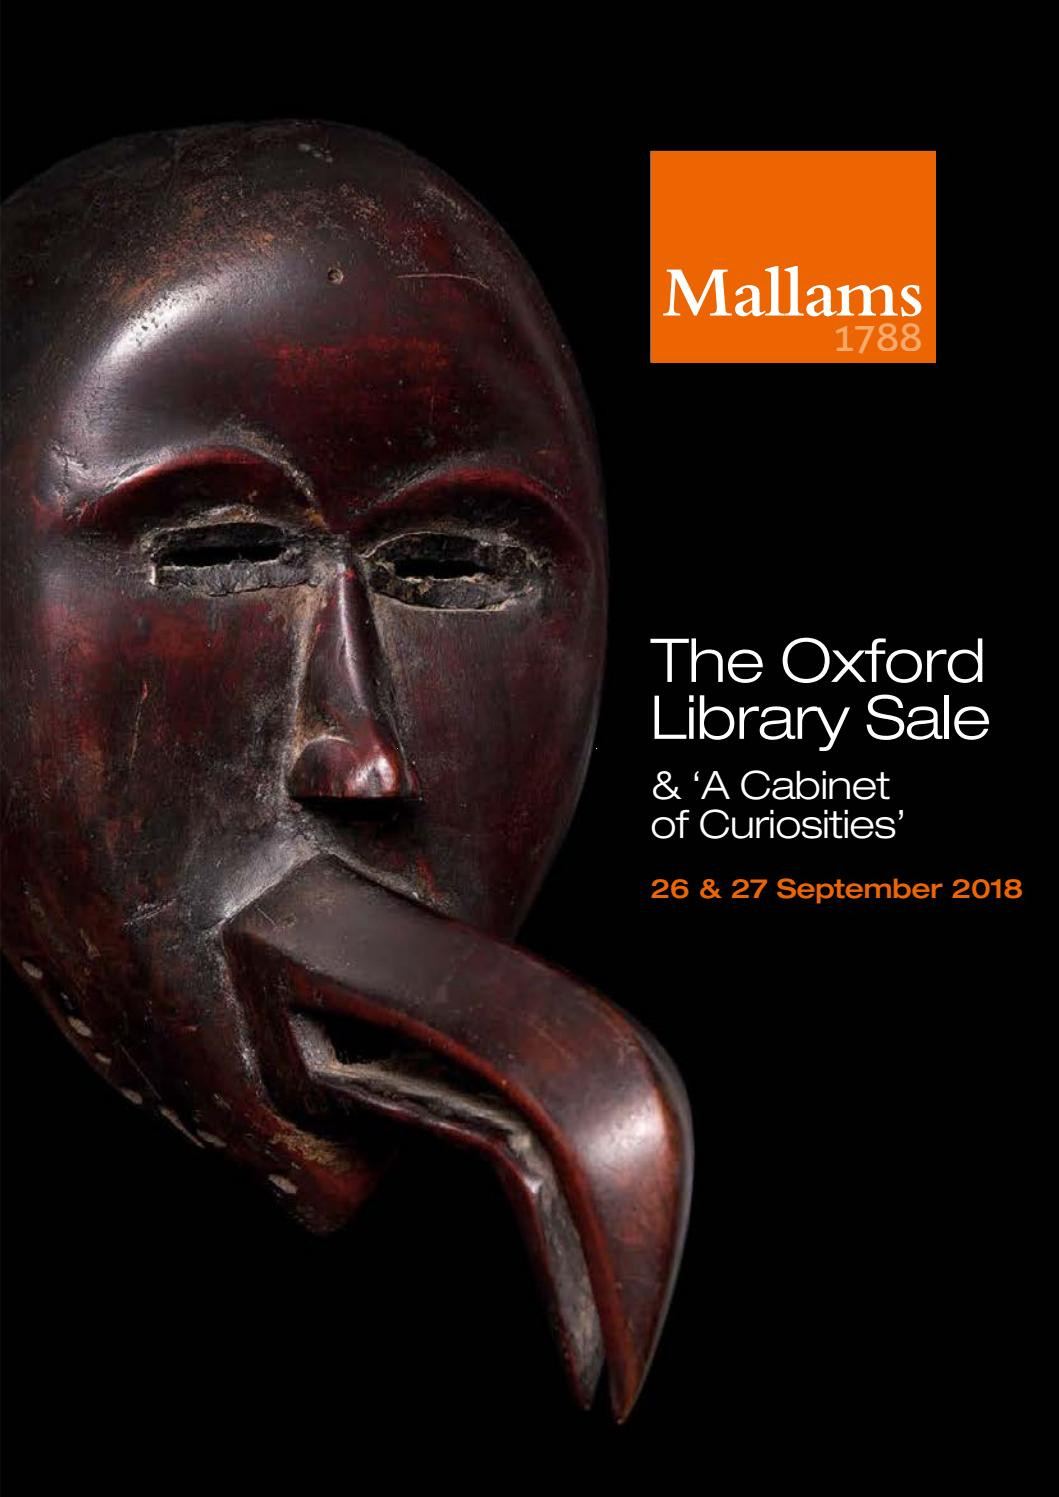 cameo girl head vases sale of the oxford library sale to include a private collection of tribal in the oxford library sale to include a private collection of tribal art 26 27 september 2018 by mallams1788 issuu